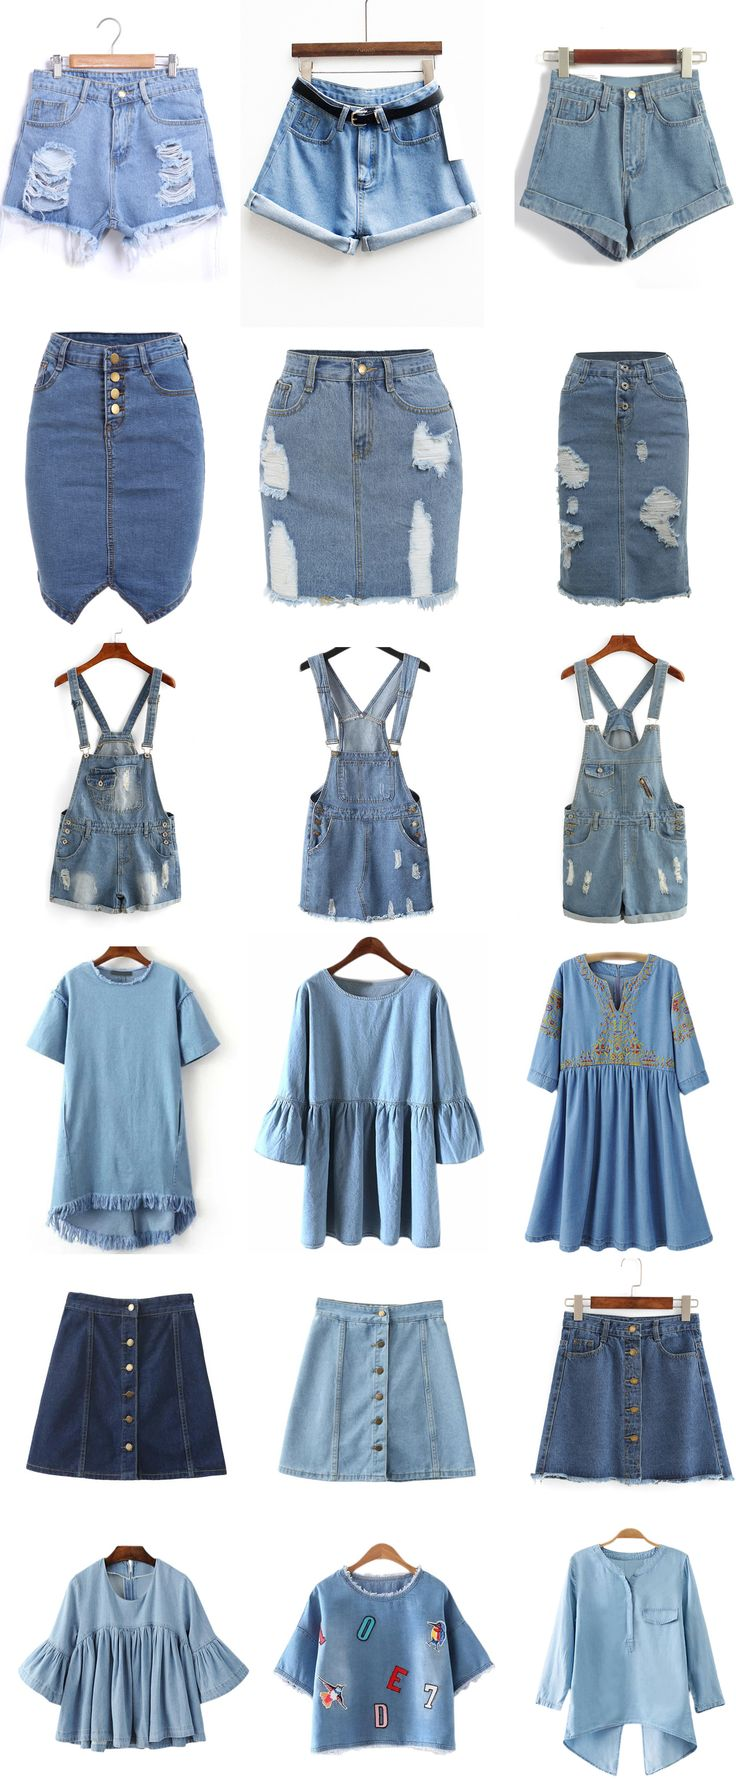 Denim Fashion - Searching more amazing pieces at Romwe.com